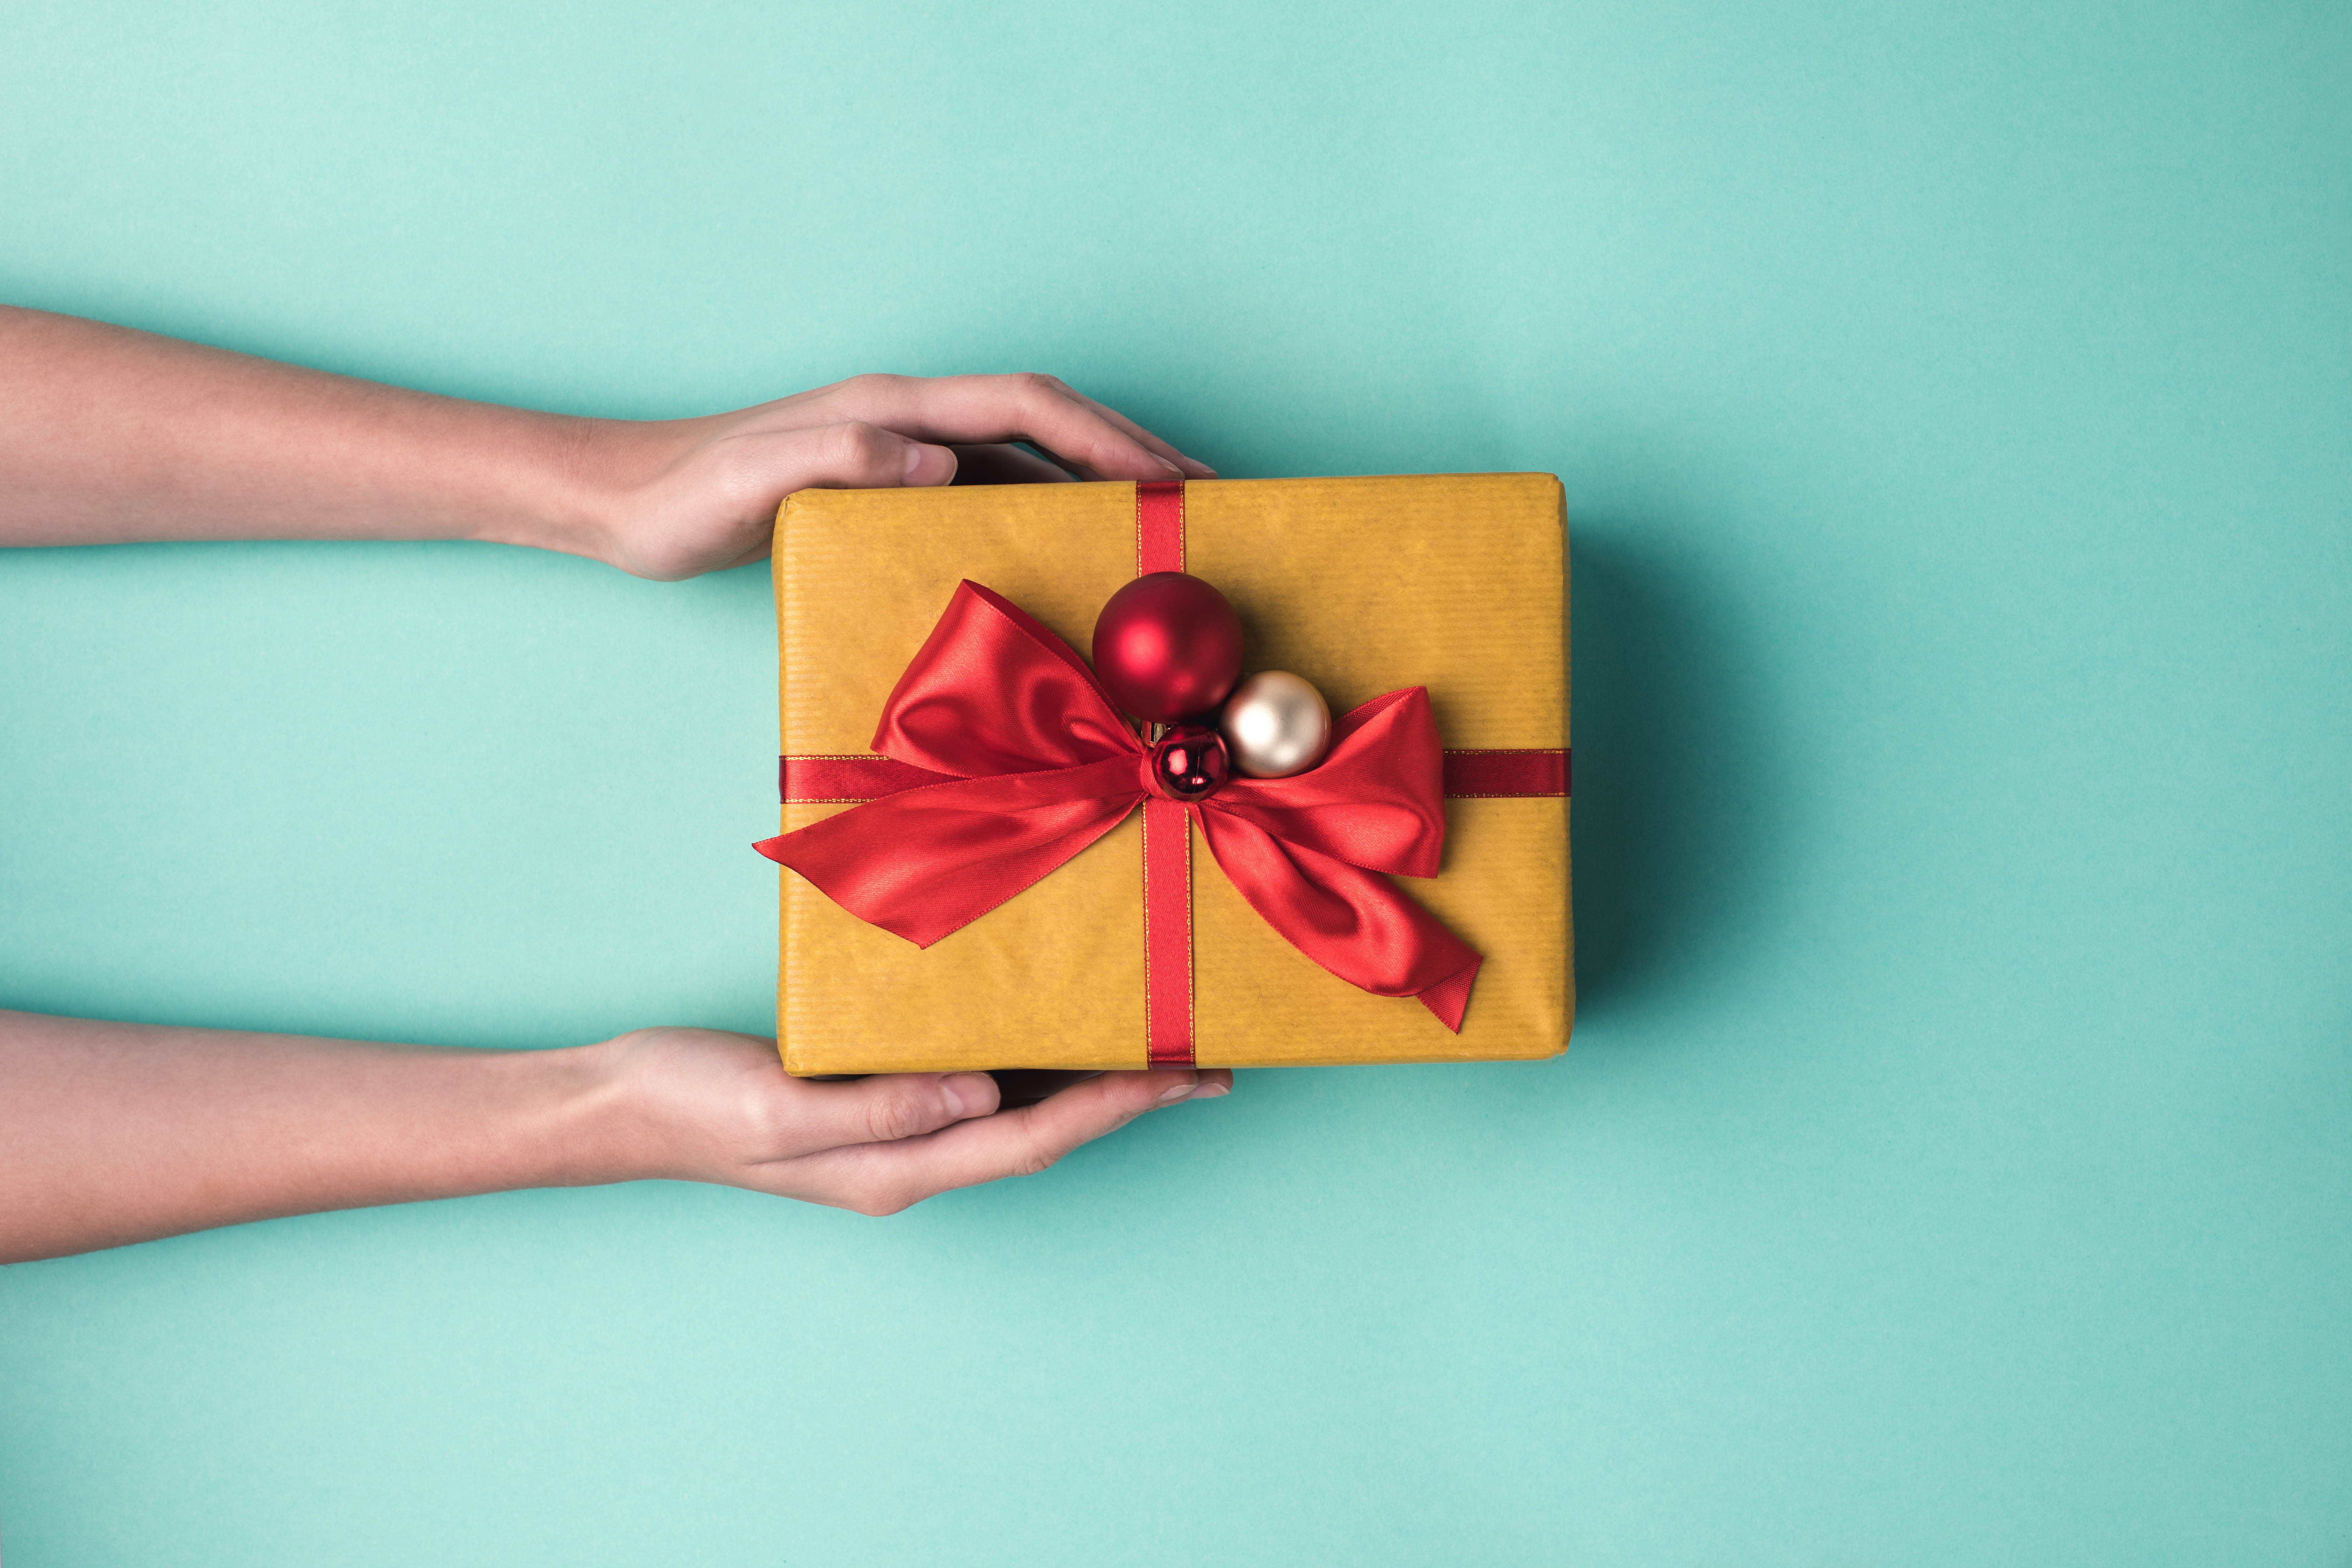 Christmas gifts ideas for Korean skin care & makeup addicts